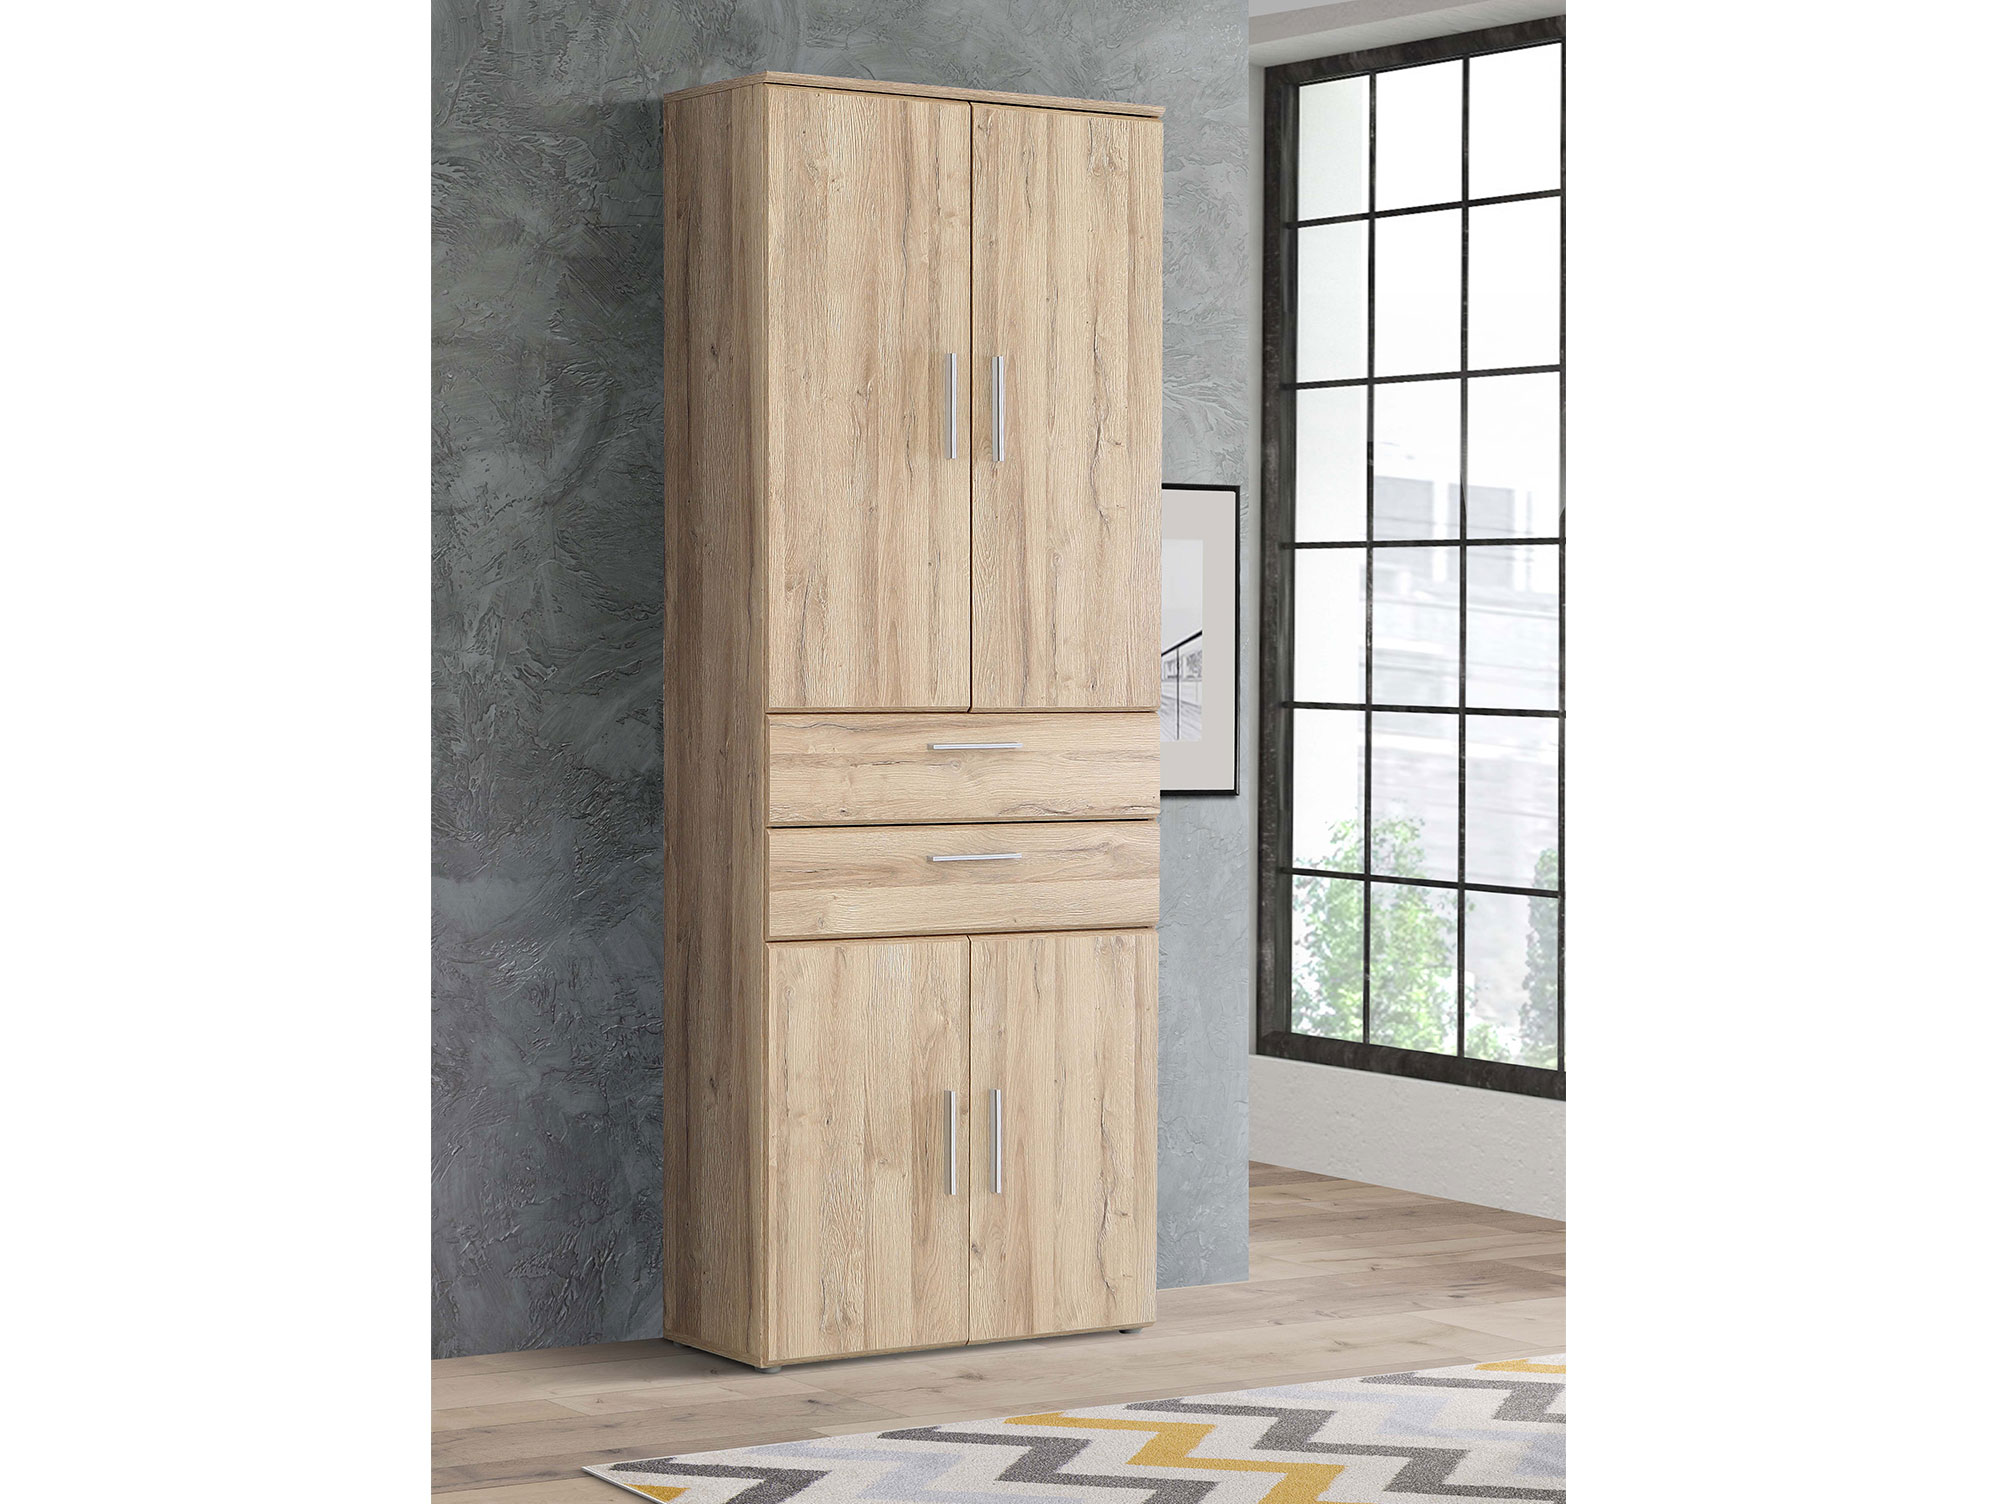 maraun schrank 4 t ren 2 schubk sten material dekorspanplatte eiche biancofarben. Black Bedroom Furniture Sets. Home Design Ideas